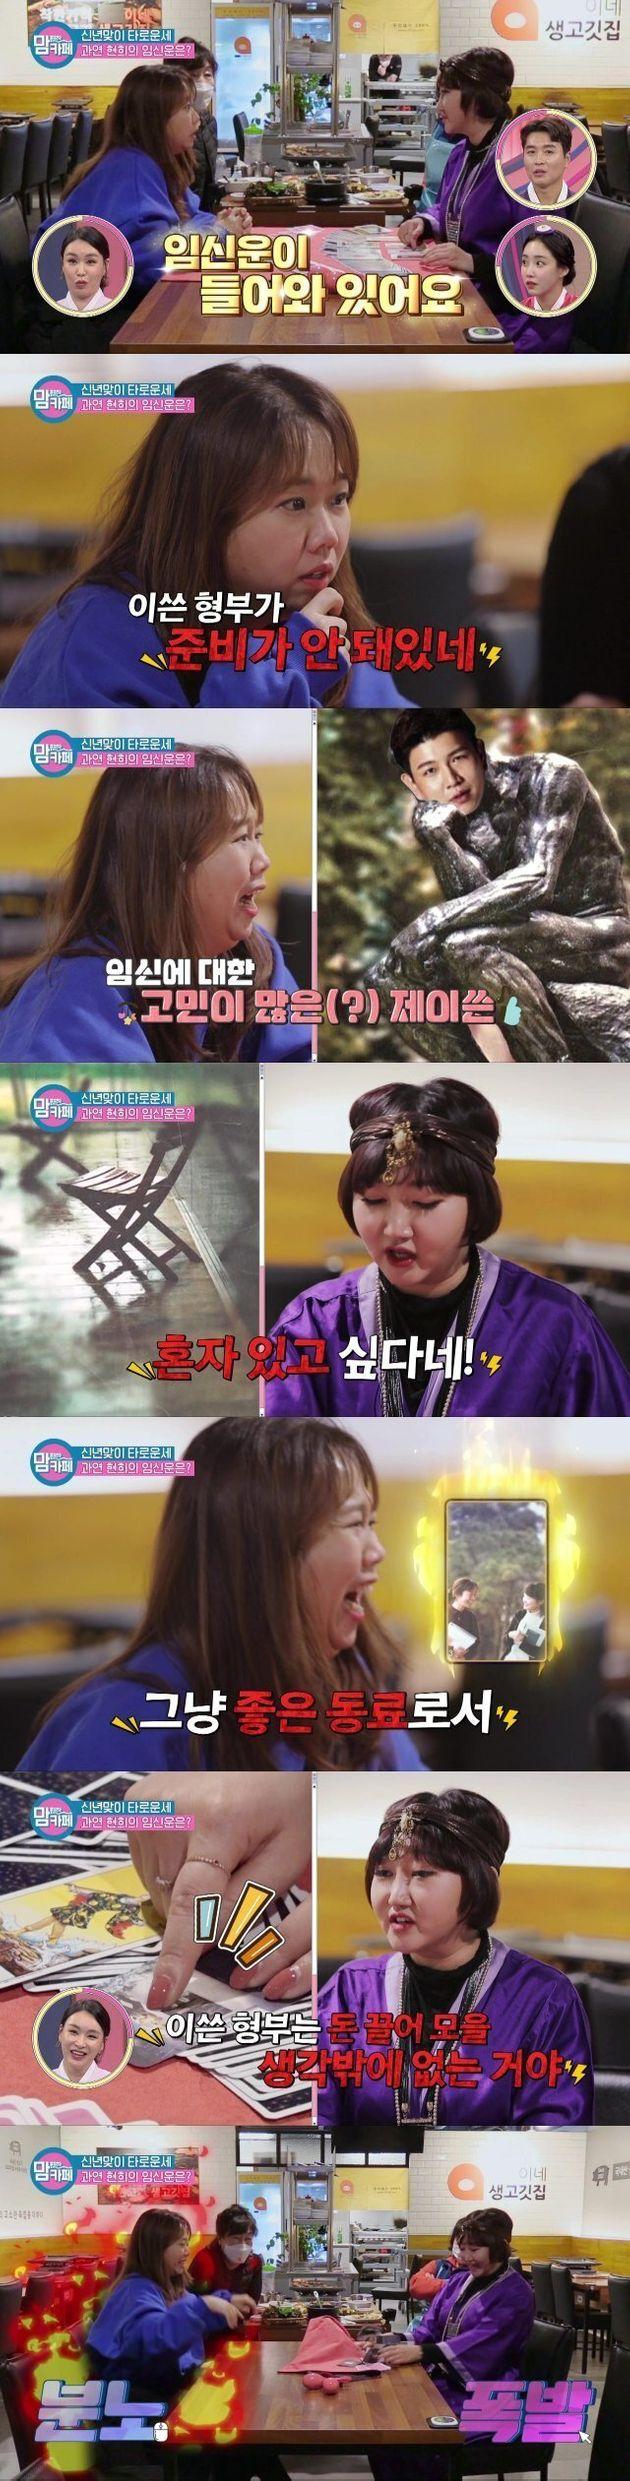 Hong Hyun-hee, who is preparing to become pregnant with'easy cafe'